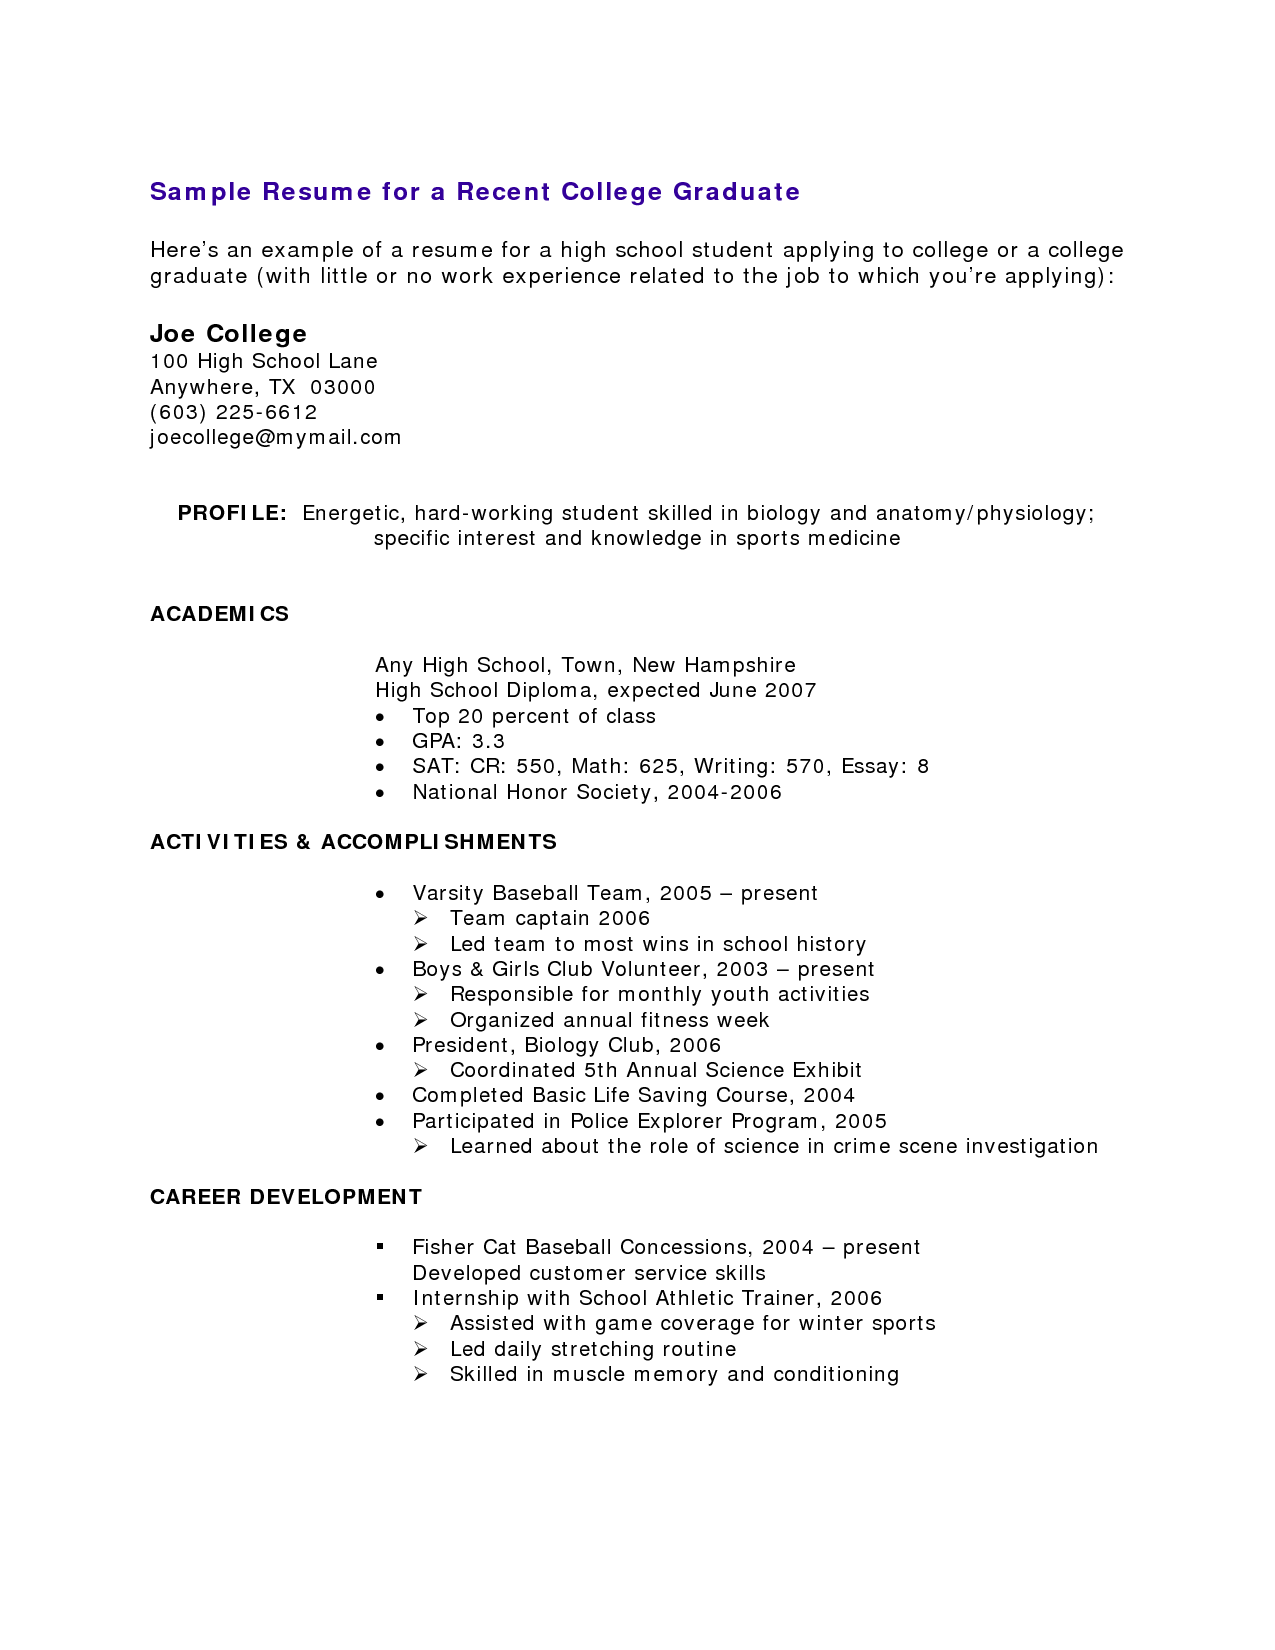 Resumes Templates For Students With No Experience  httpwwwresumecareerinforesumes